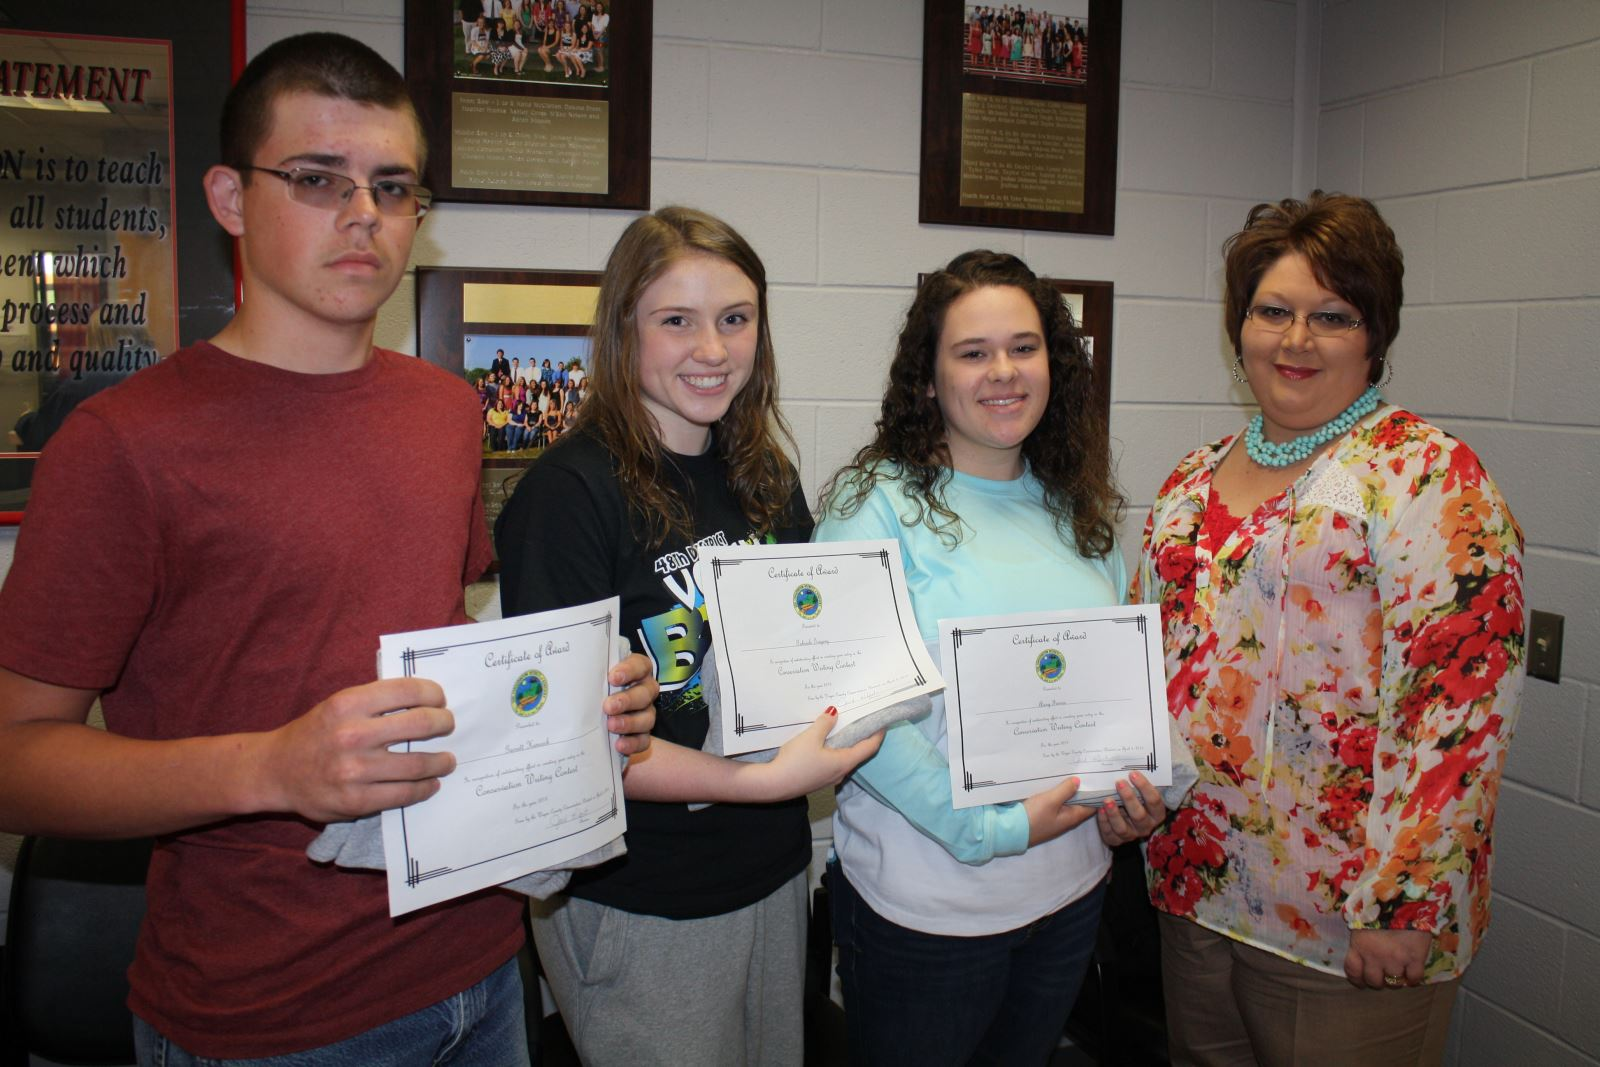 Kentucky farm bureau soil essay winners